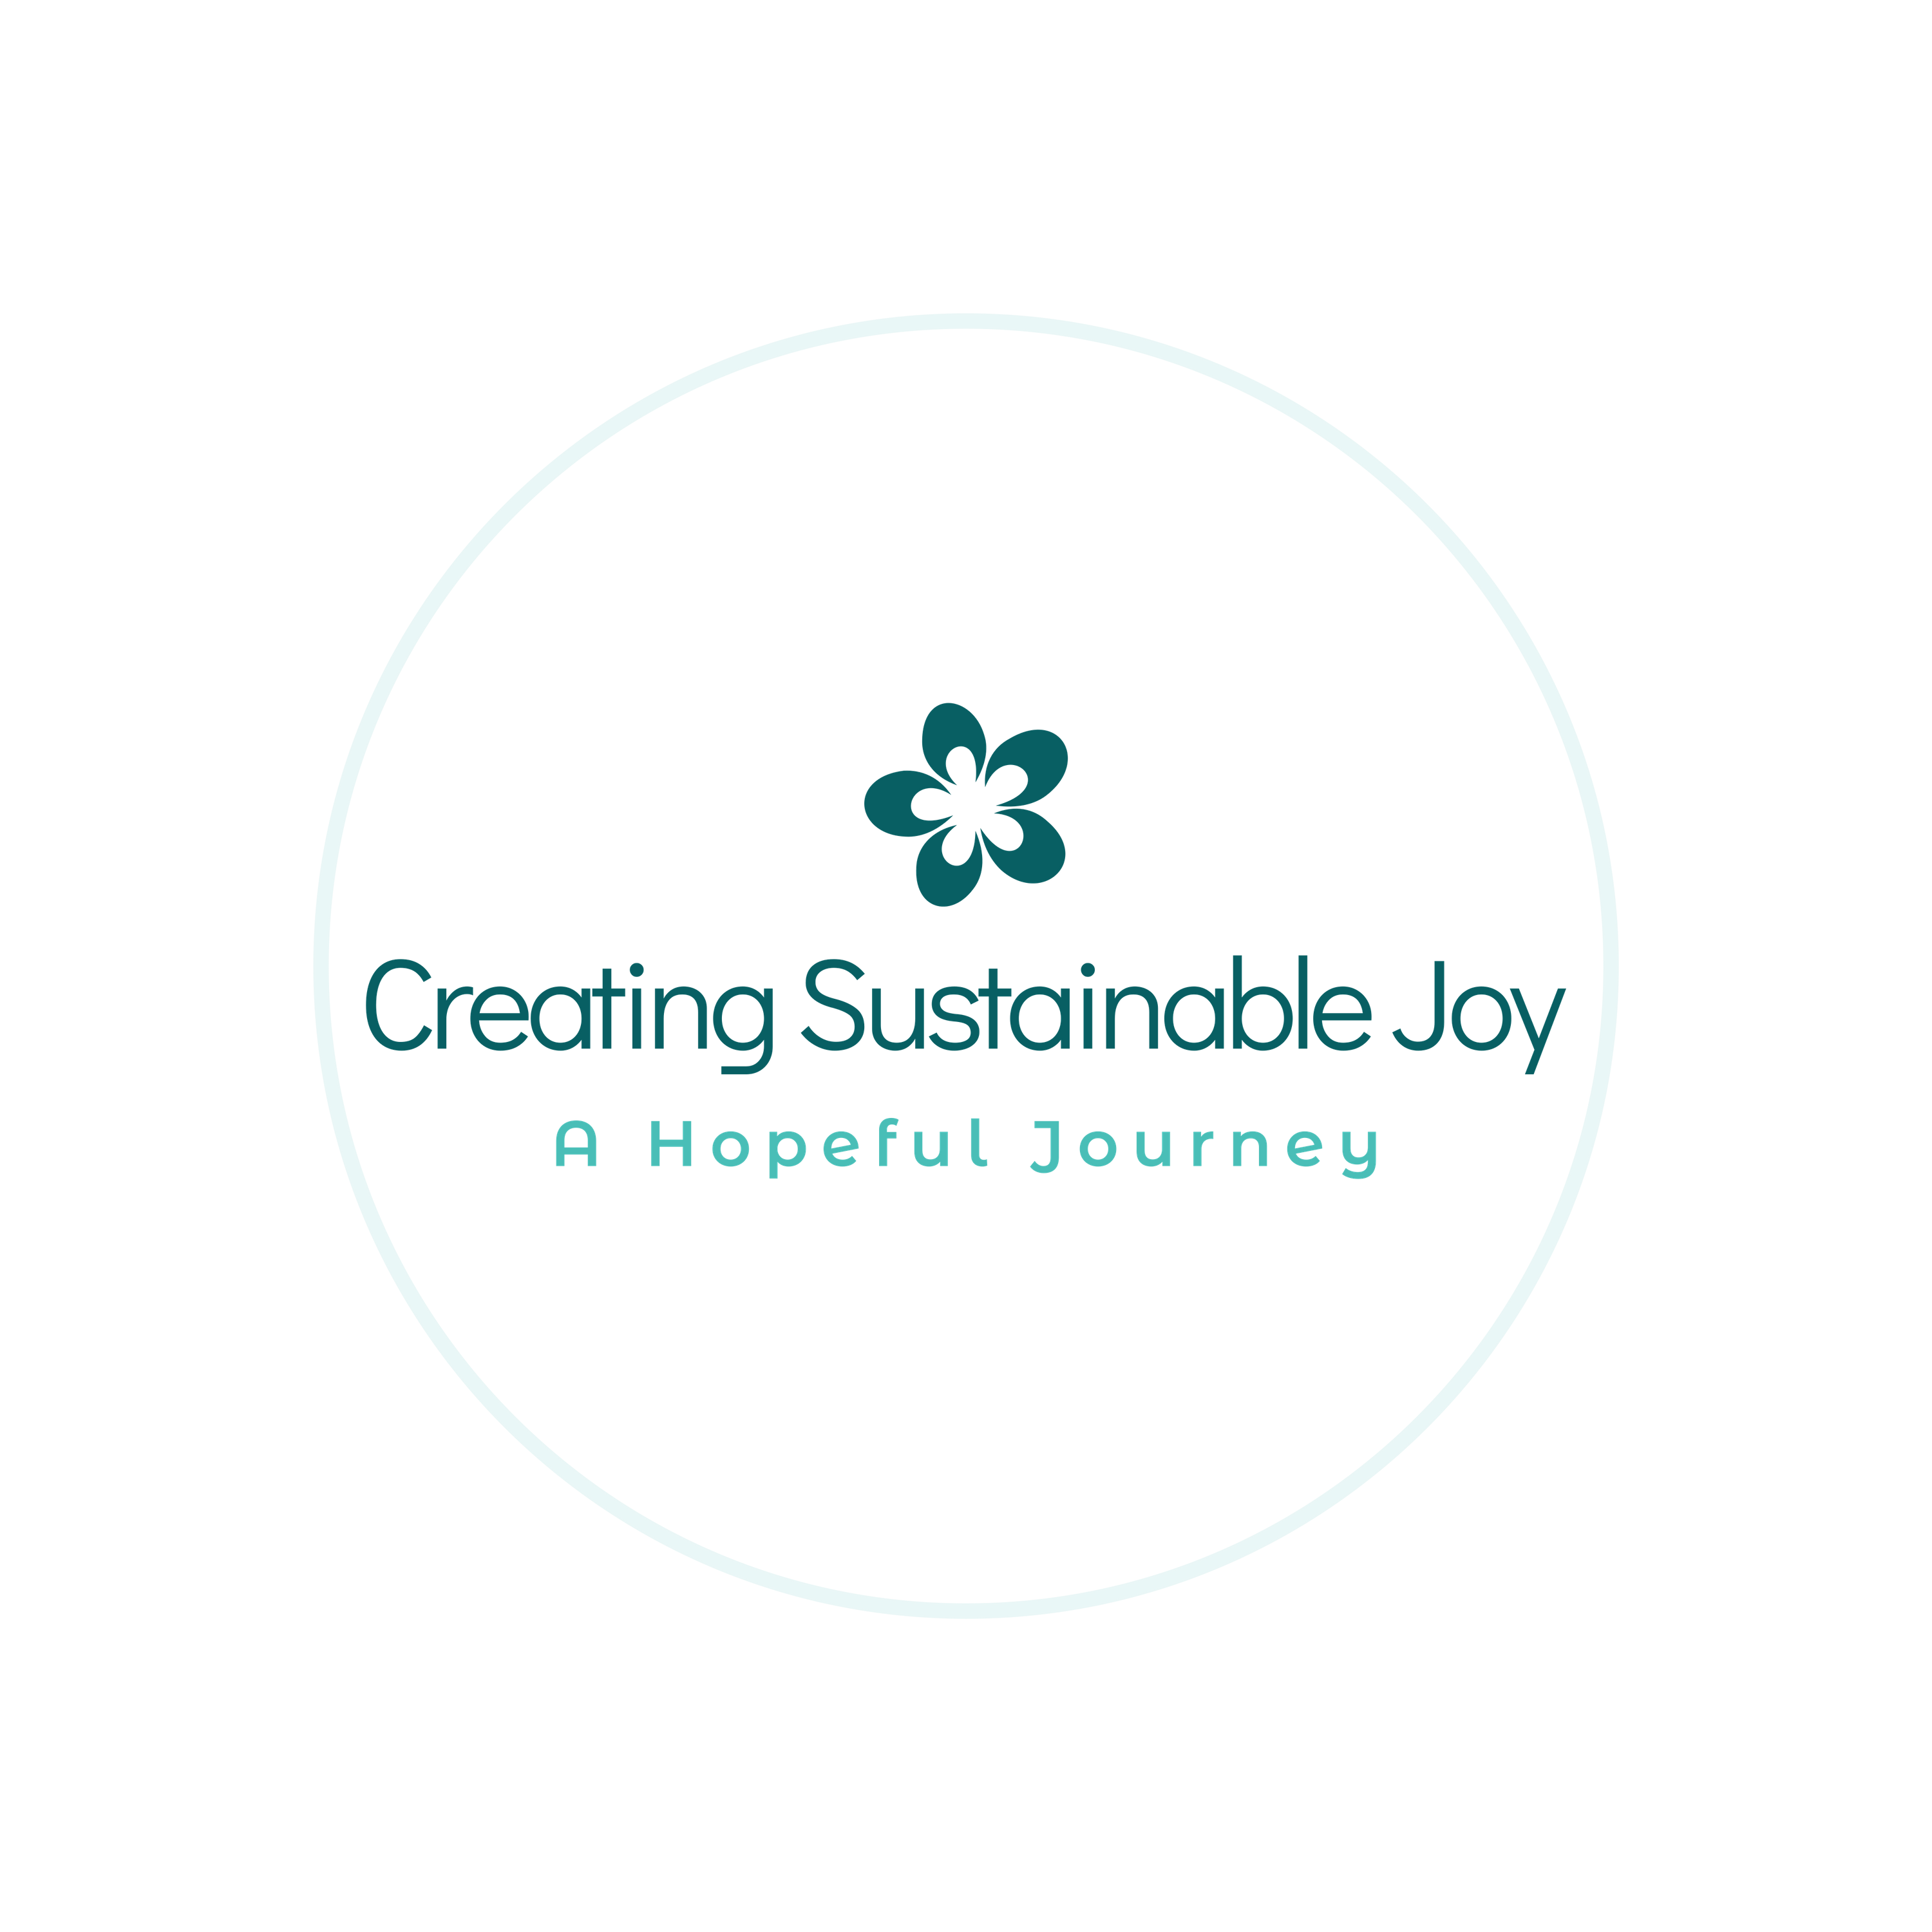 Creating Sustainable Joy